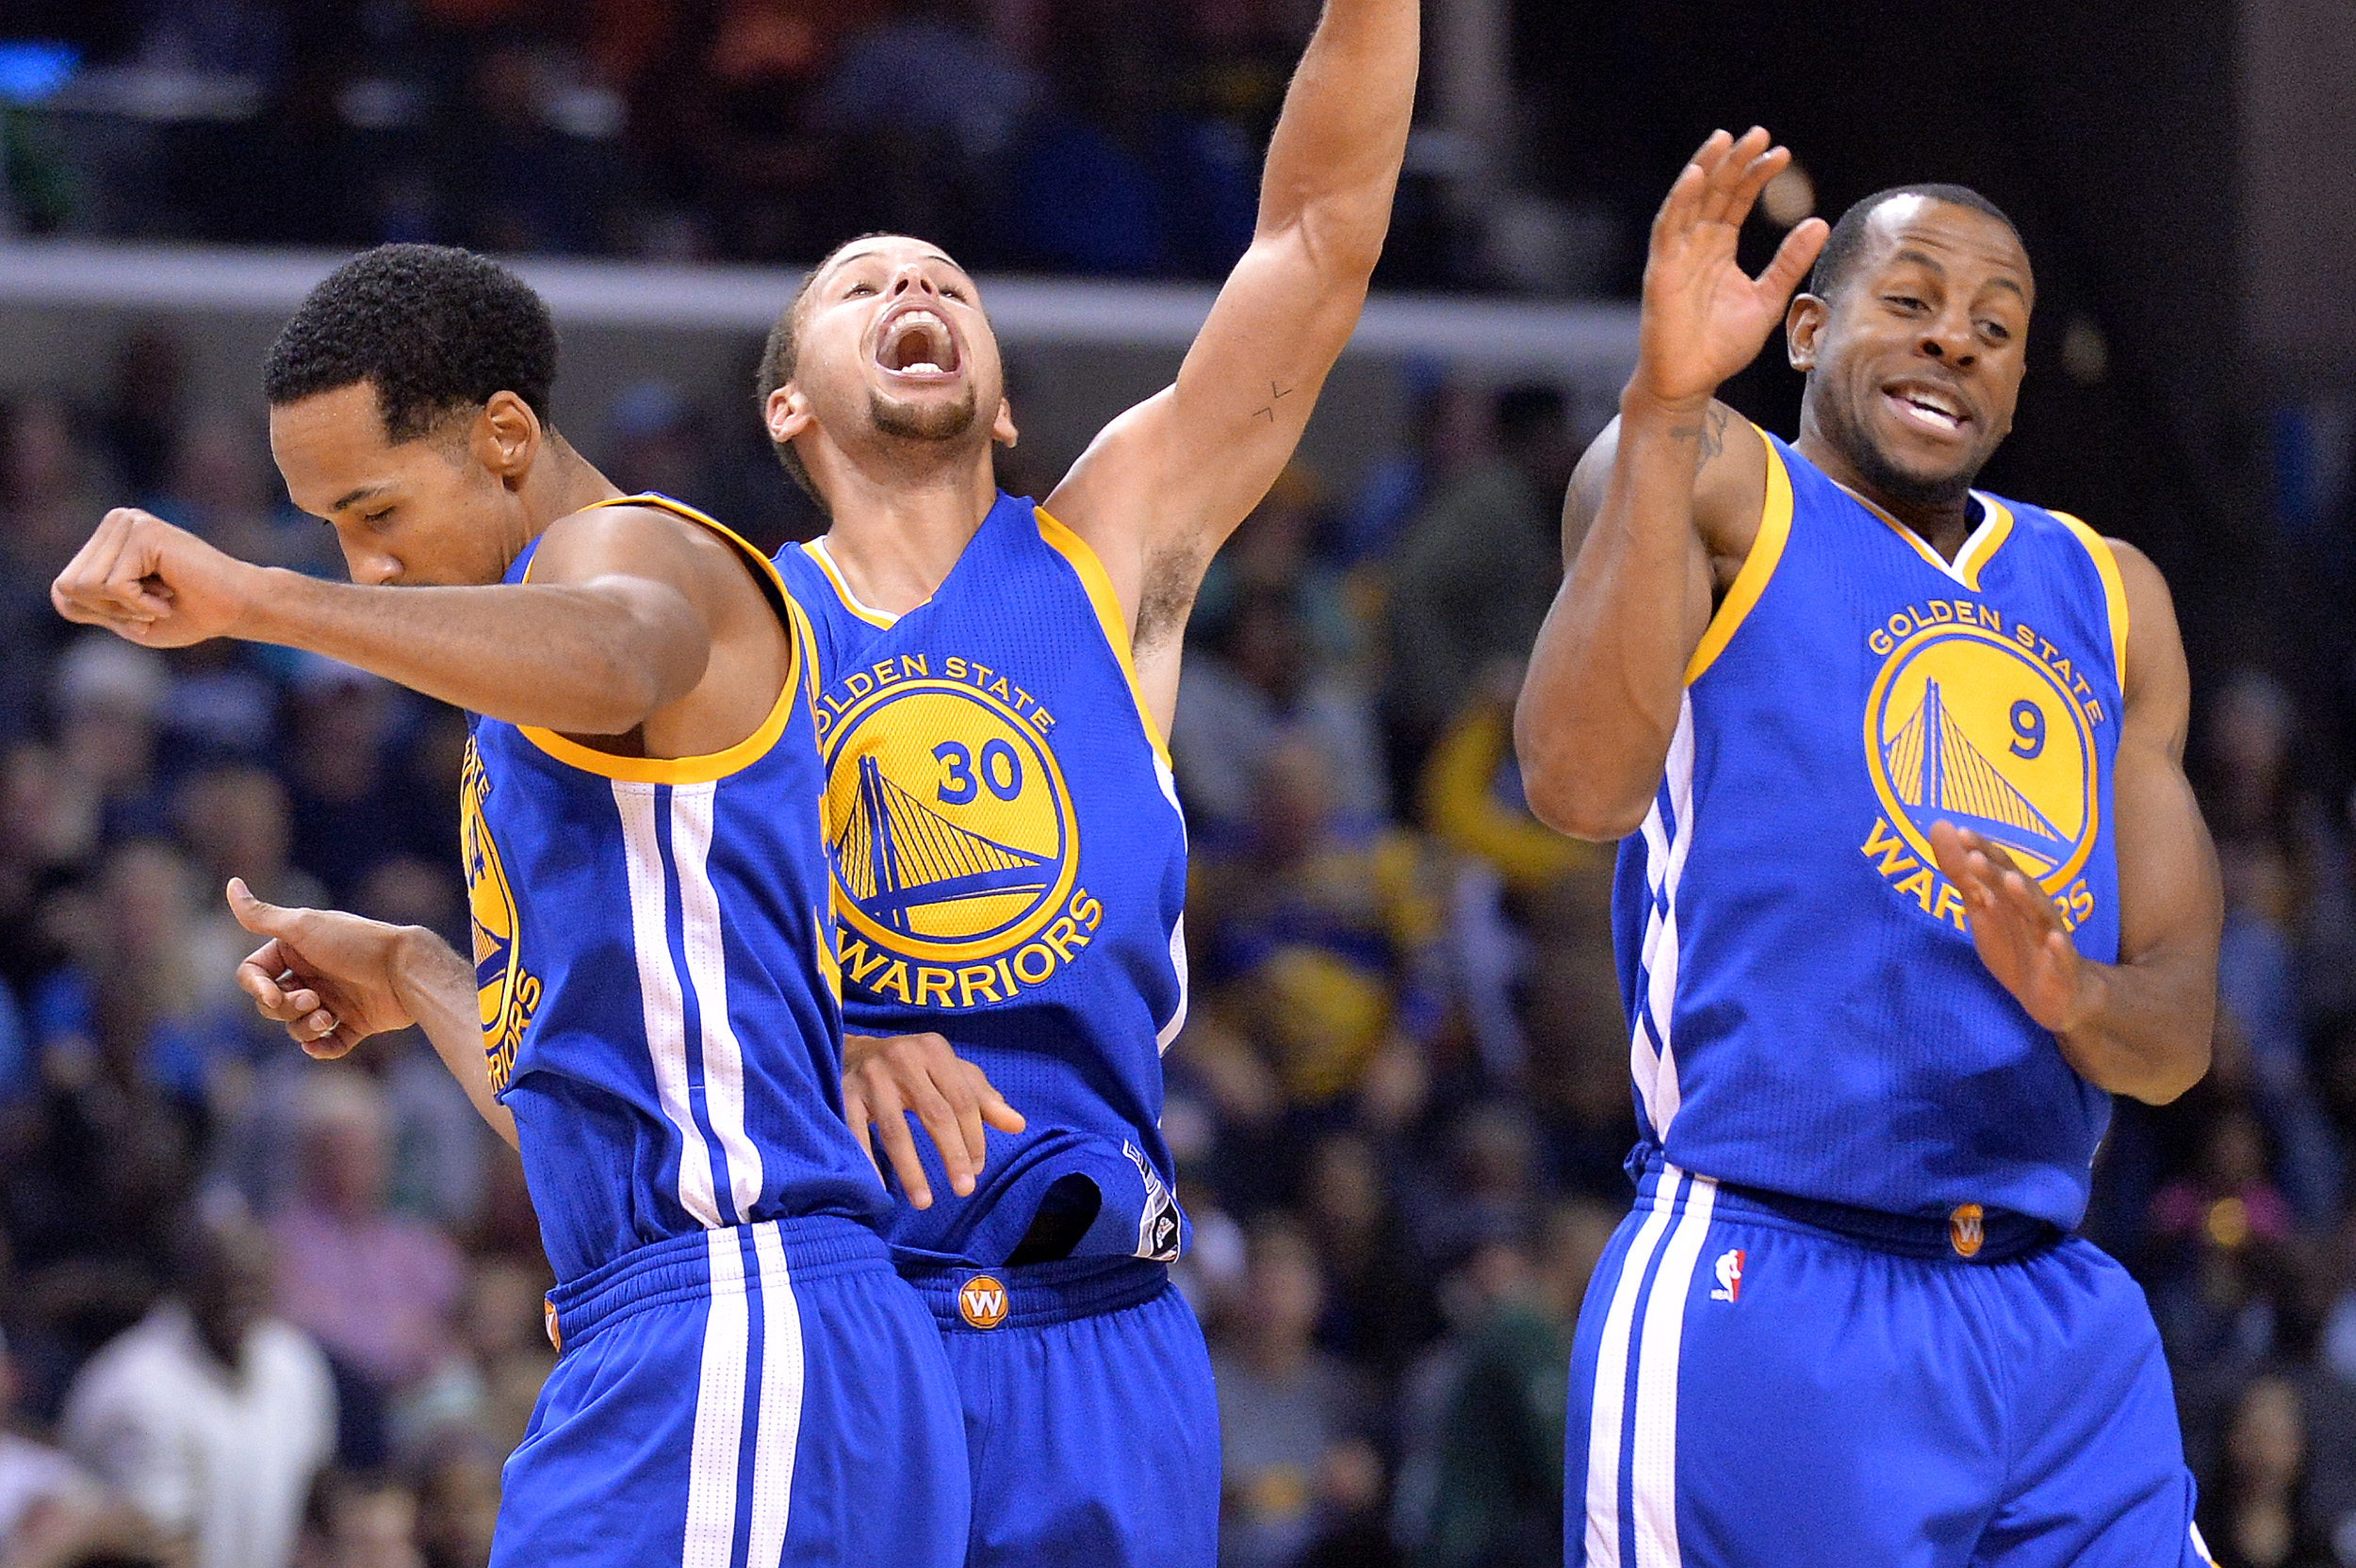 Golden State Warriors guards Shaun Livingston, left, Stephen Curry (30), and Andre Iguodala (9) celebrate after Curry's three-point score to beat the buzzer at the end of the third quarter during an NBA basketball game against the Memphis Grizzlies, Wedne